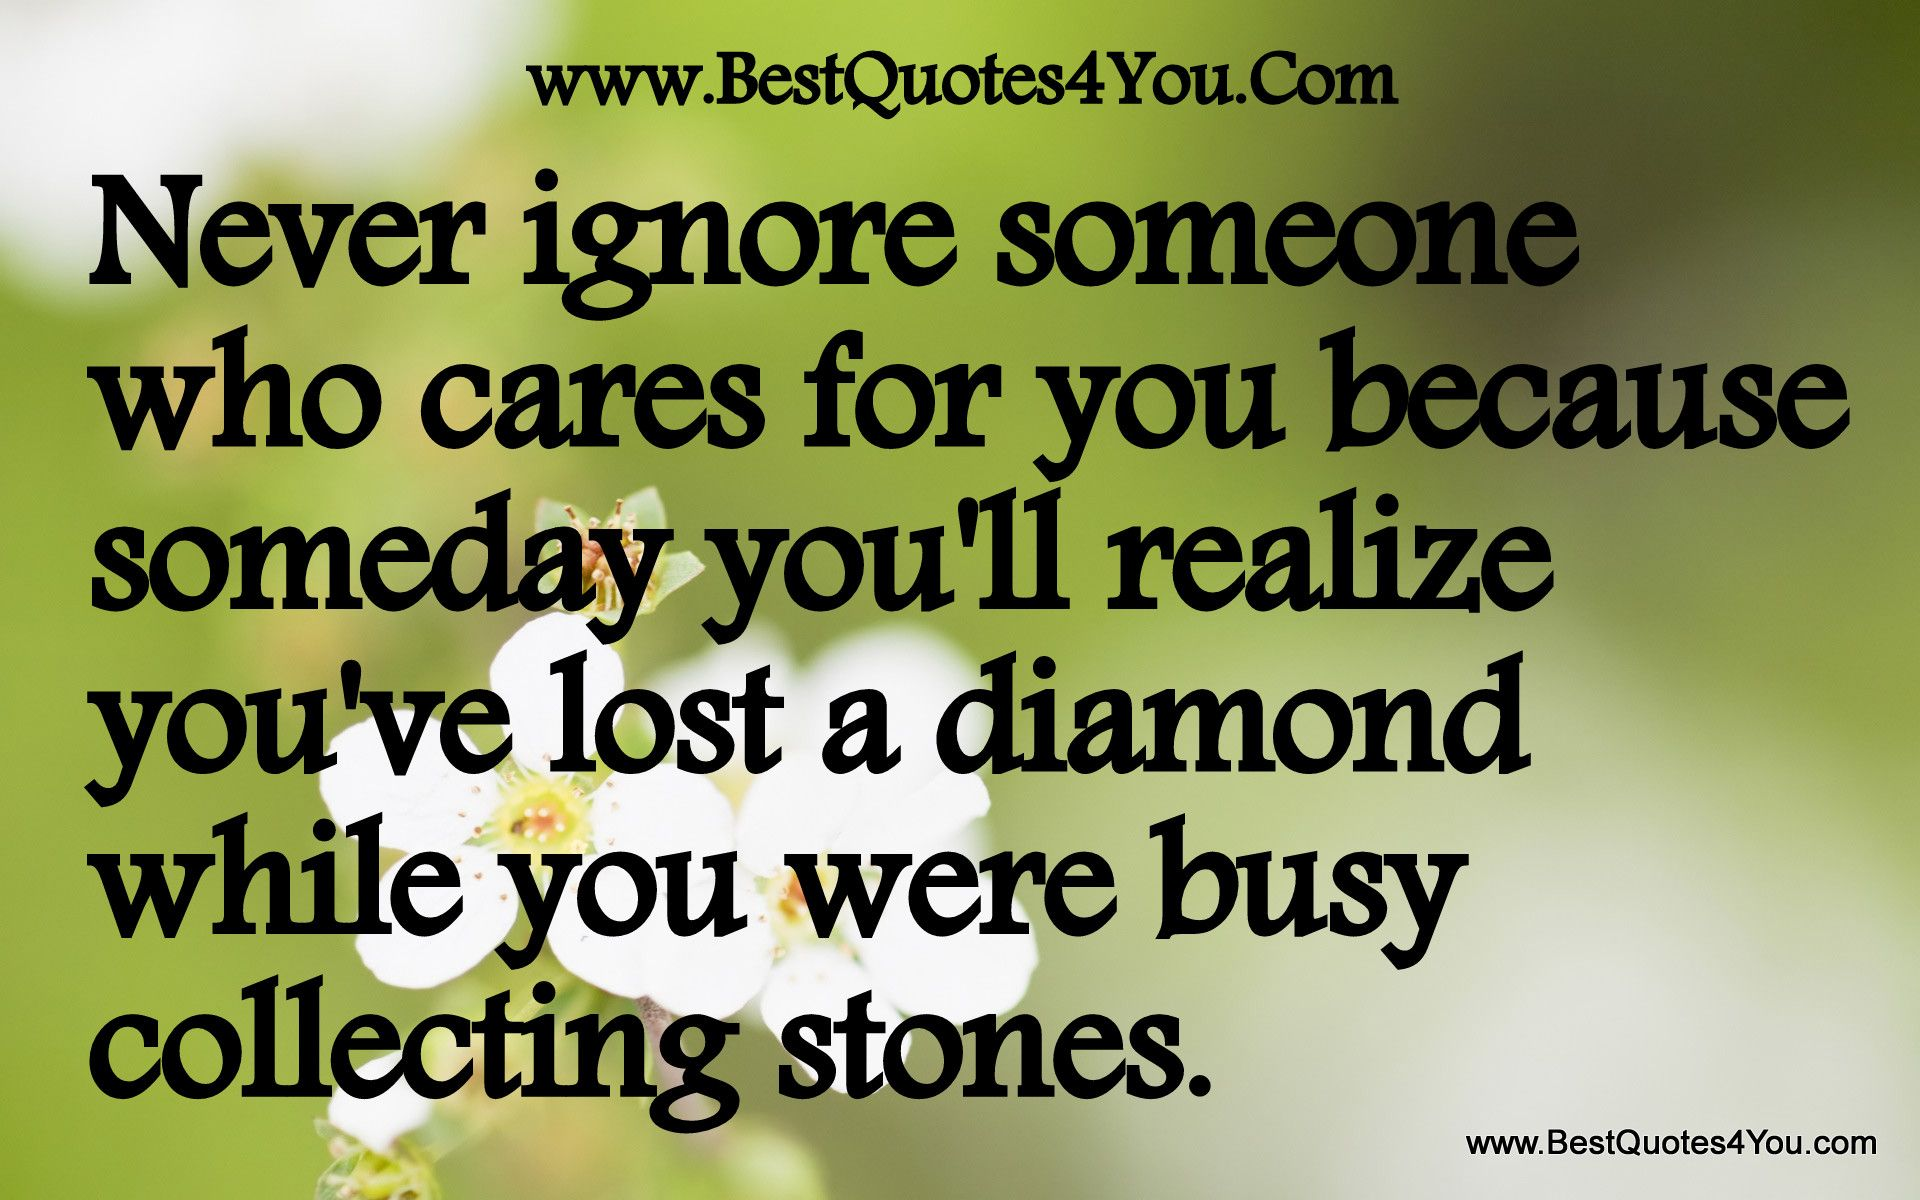 Loss Of A Loved One Quotes Inspirational Never Ignore Someone Who Cares For You Because Someday You'll